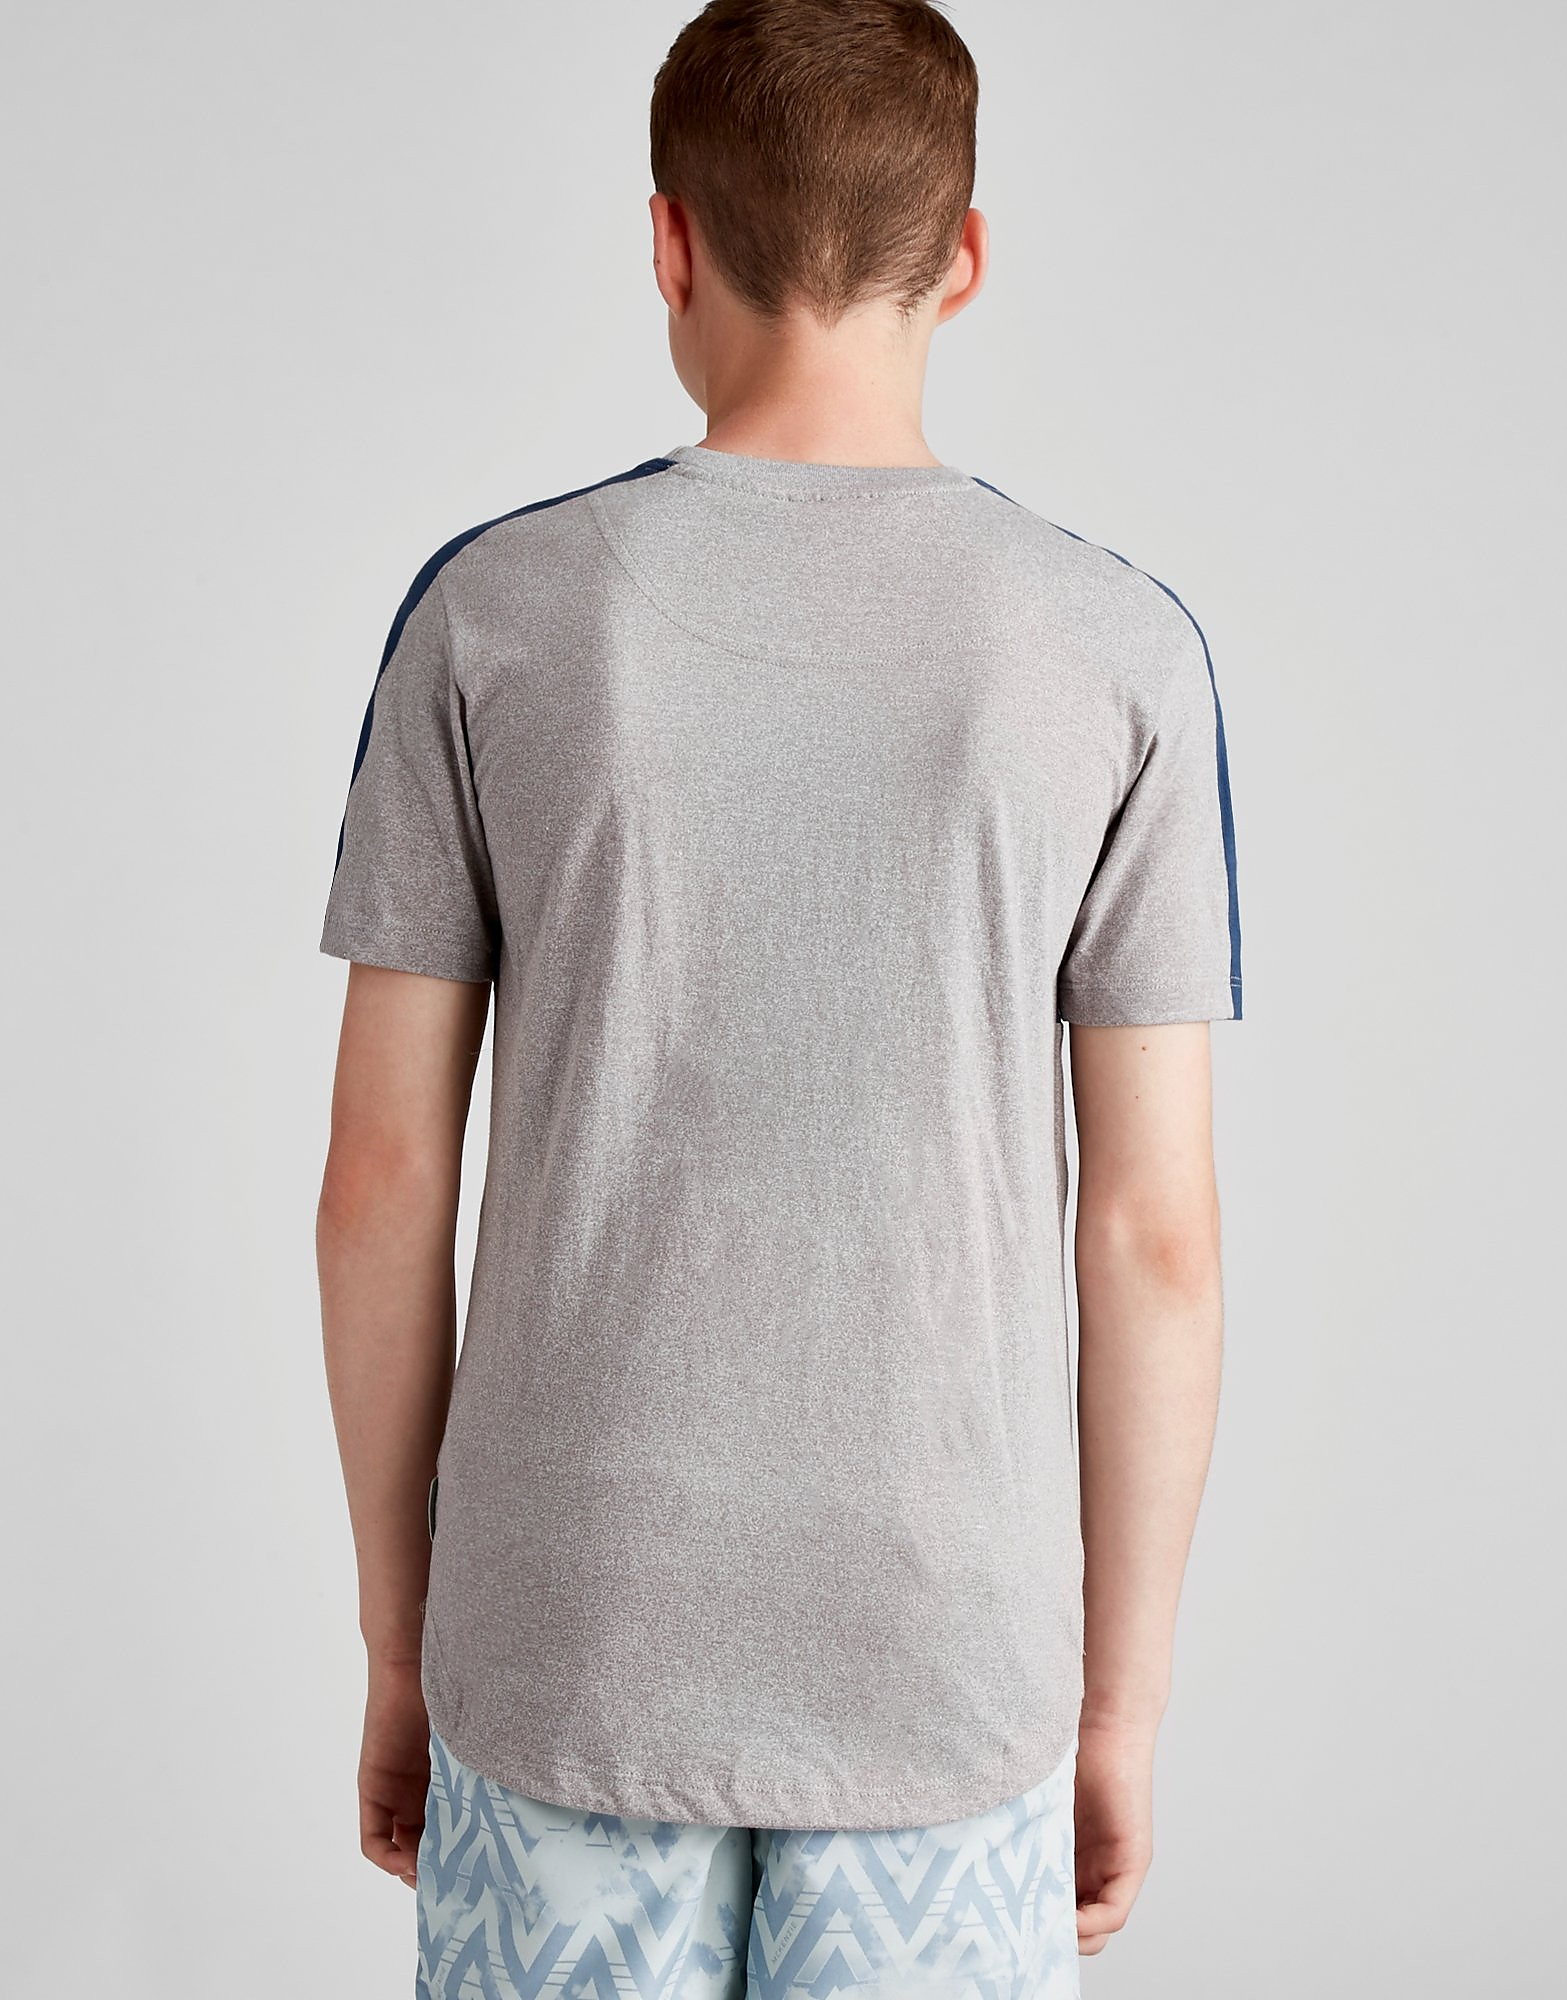 McKenzie Ivor Mid T-Shirt Junior